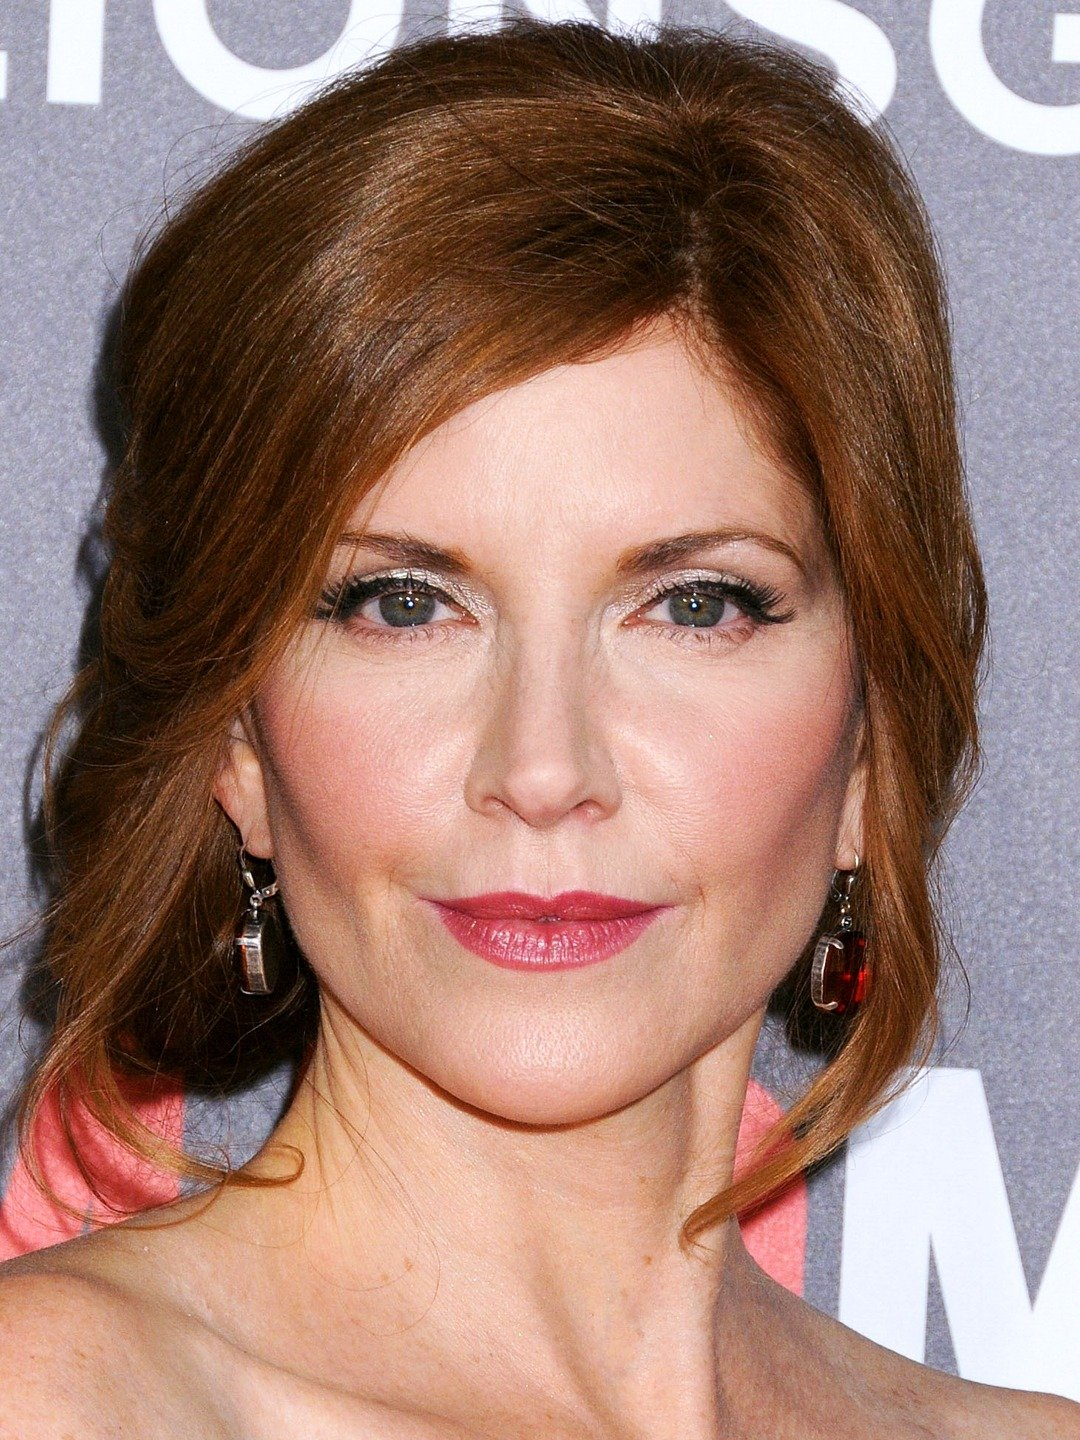 Melinda McGraw American Actress